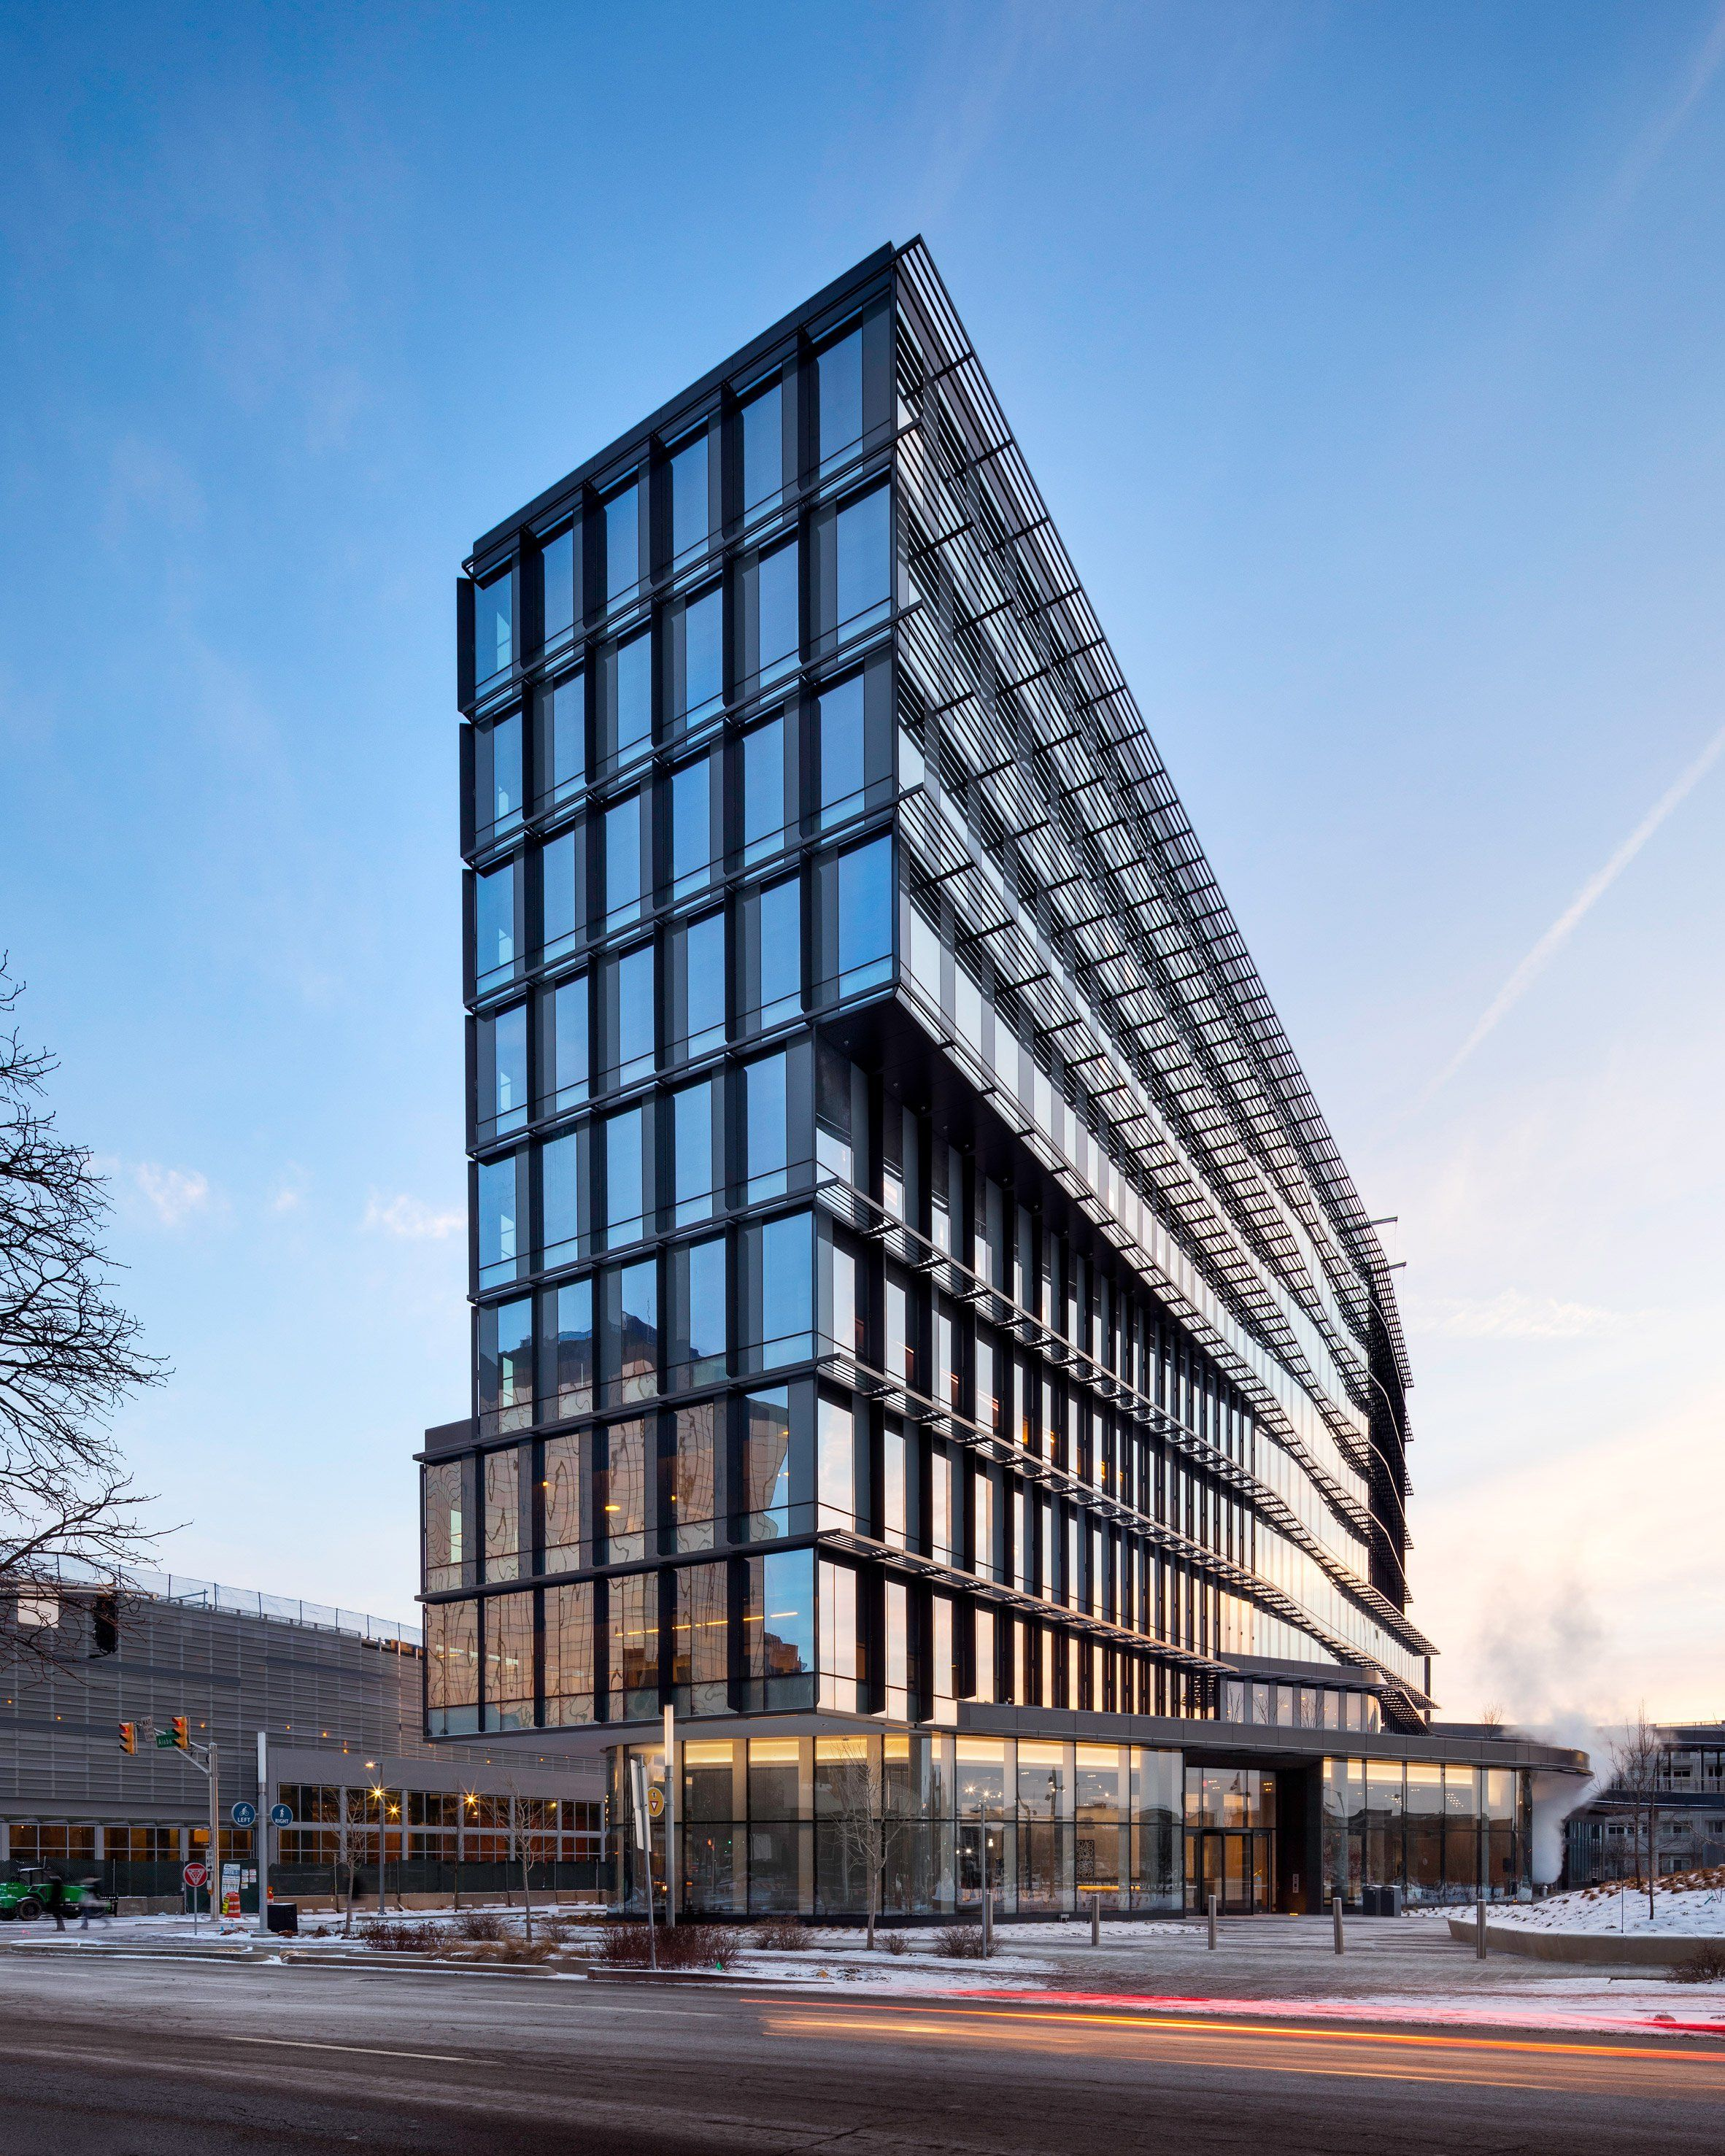 Deborah Berke S Tower For Indianapolis Features Shifted Floor Plates Office Building Architecture Facade Architecture Architecture